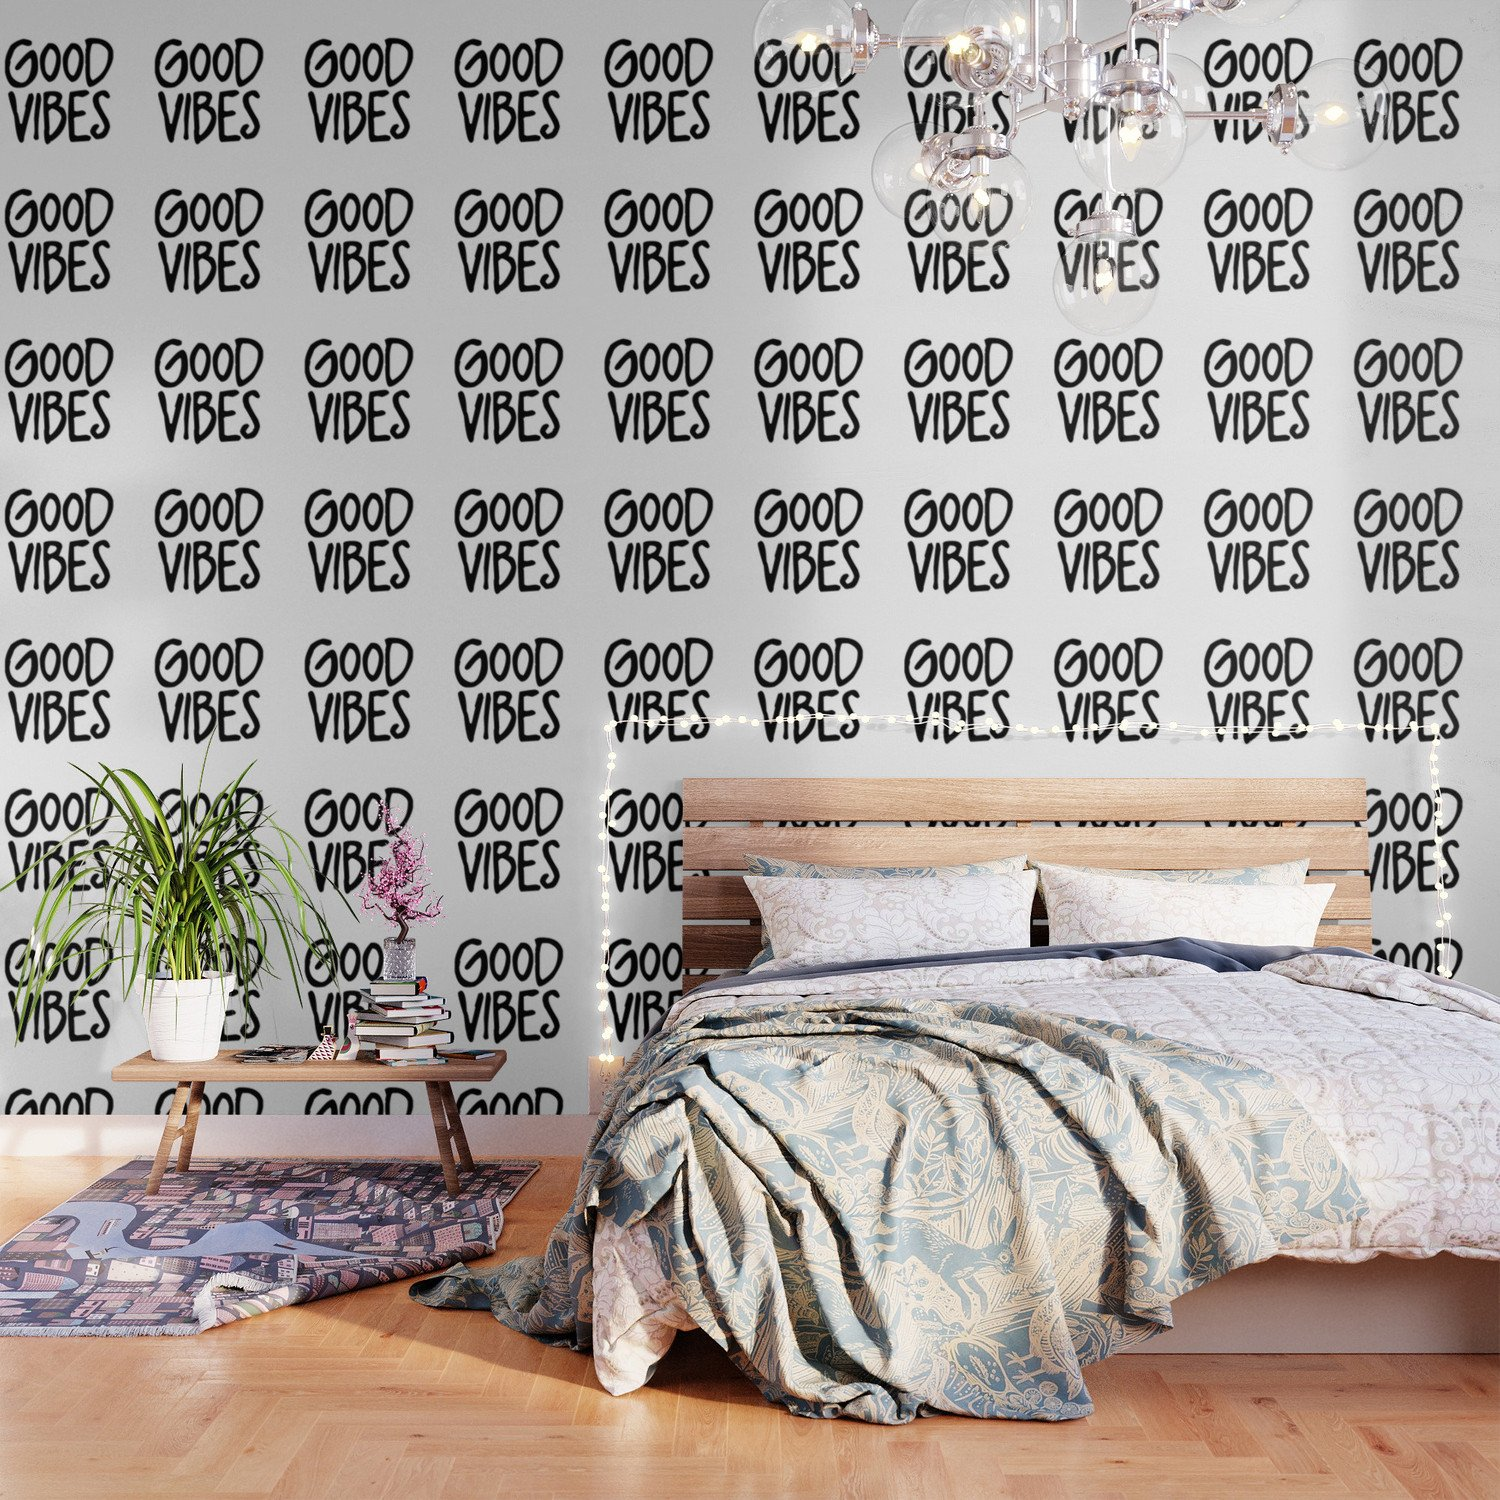 Wallpaper Accent Wall Bedroom Lovely Good Vibes Wallpaper